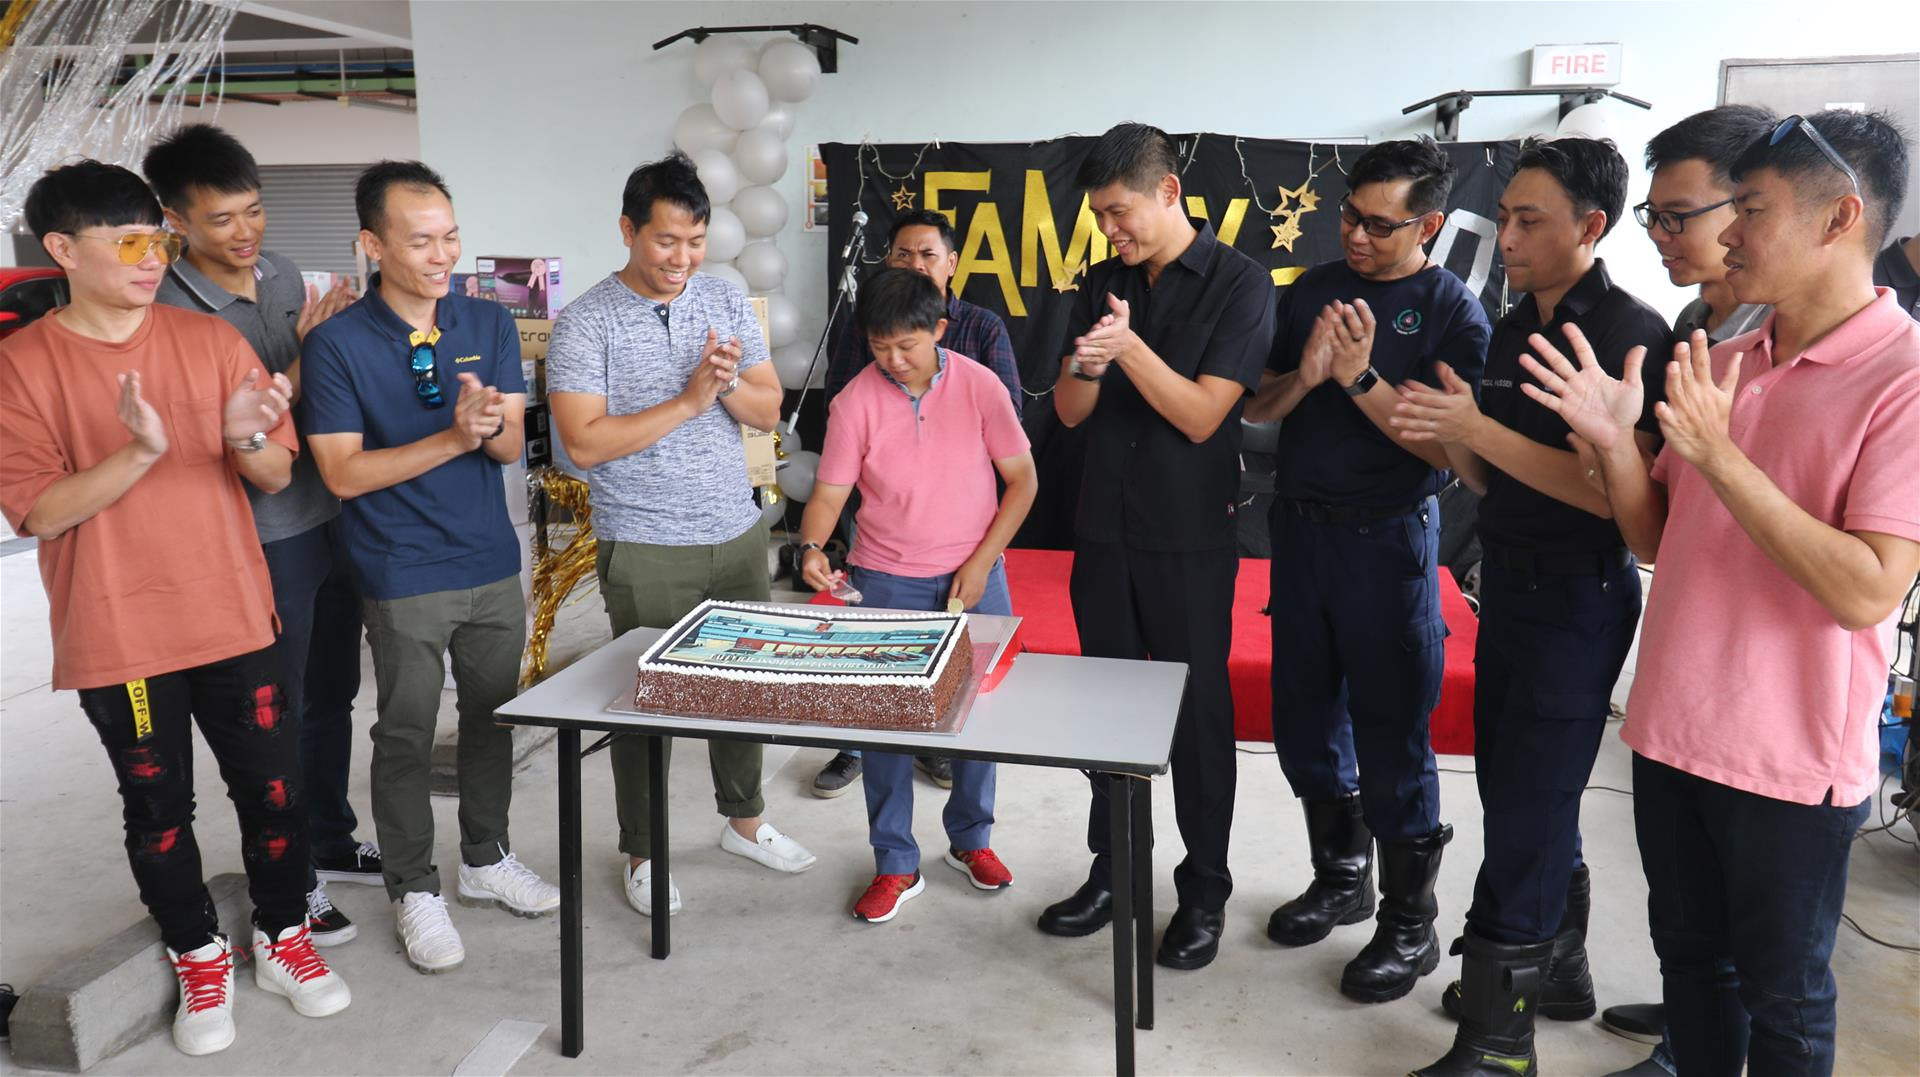 Cake cutting ceremony to commemorate the 10th year anniversary of the station